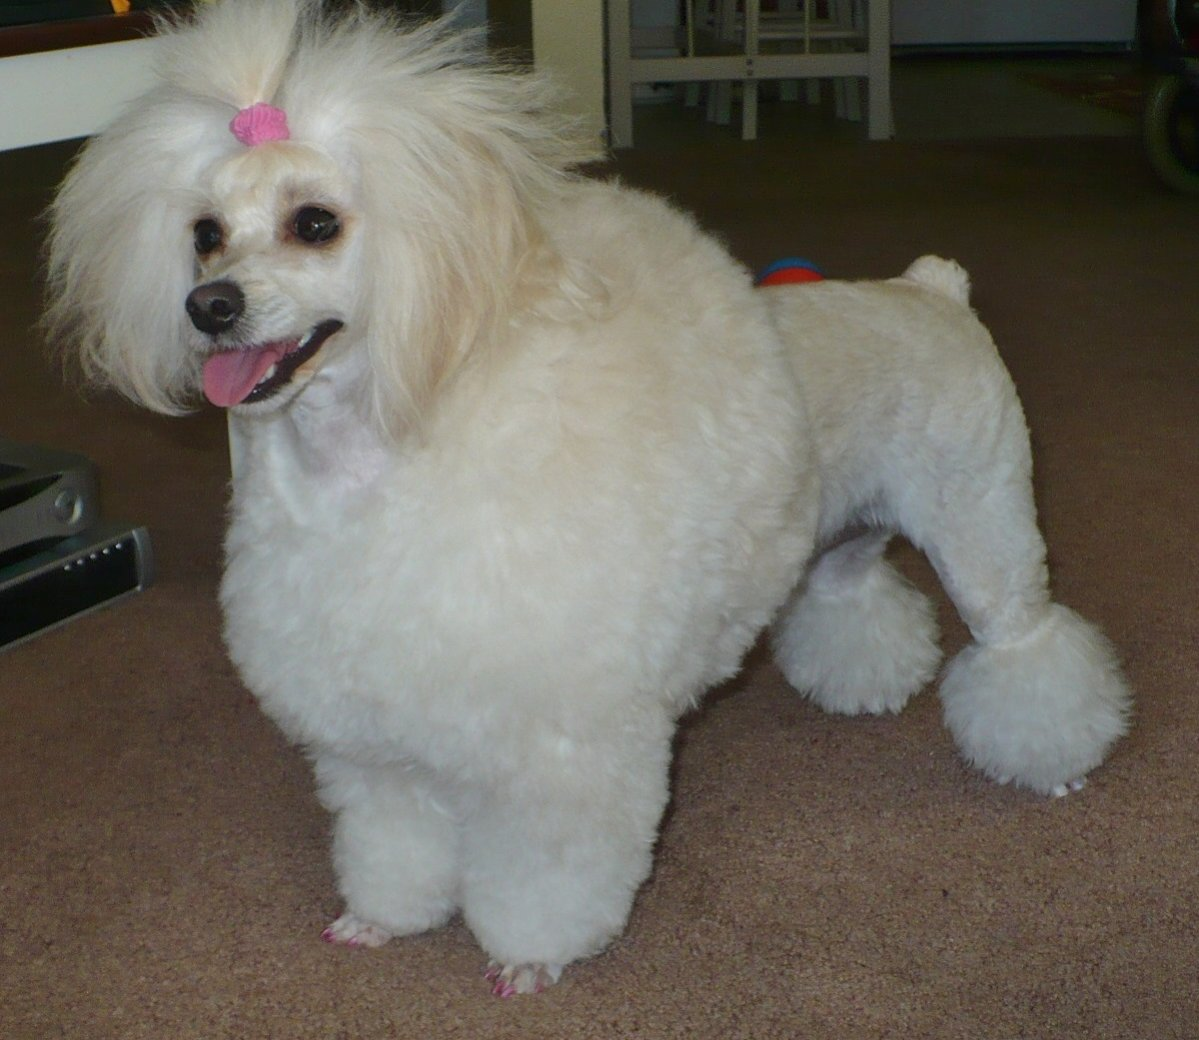 The Shaved Havanese